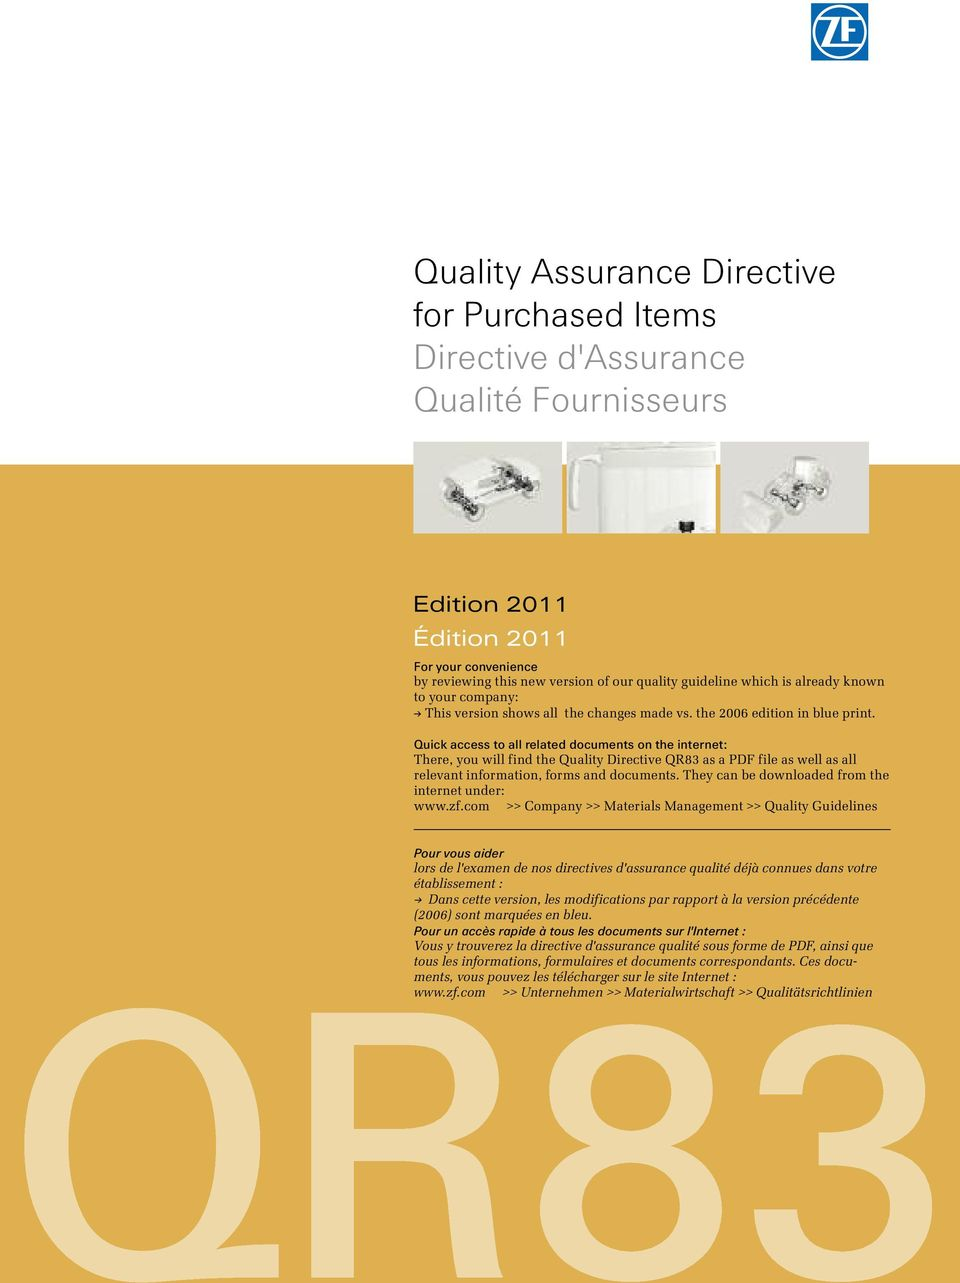 Quick access to all related documents on the internet: There, you will find the Quality Directive QR83 as a PDF file as well as all relevant information, forms and documents.